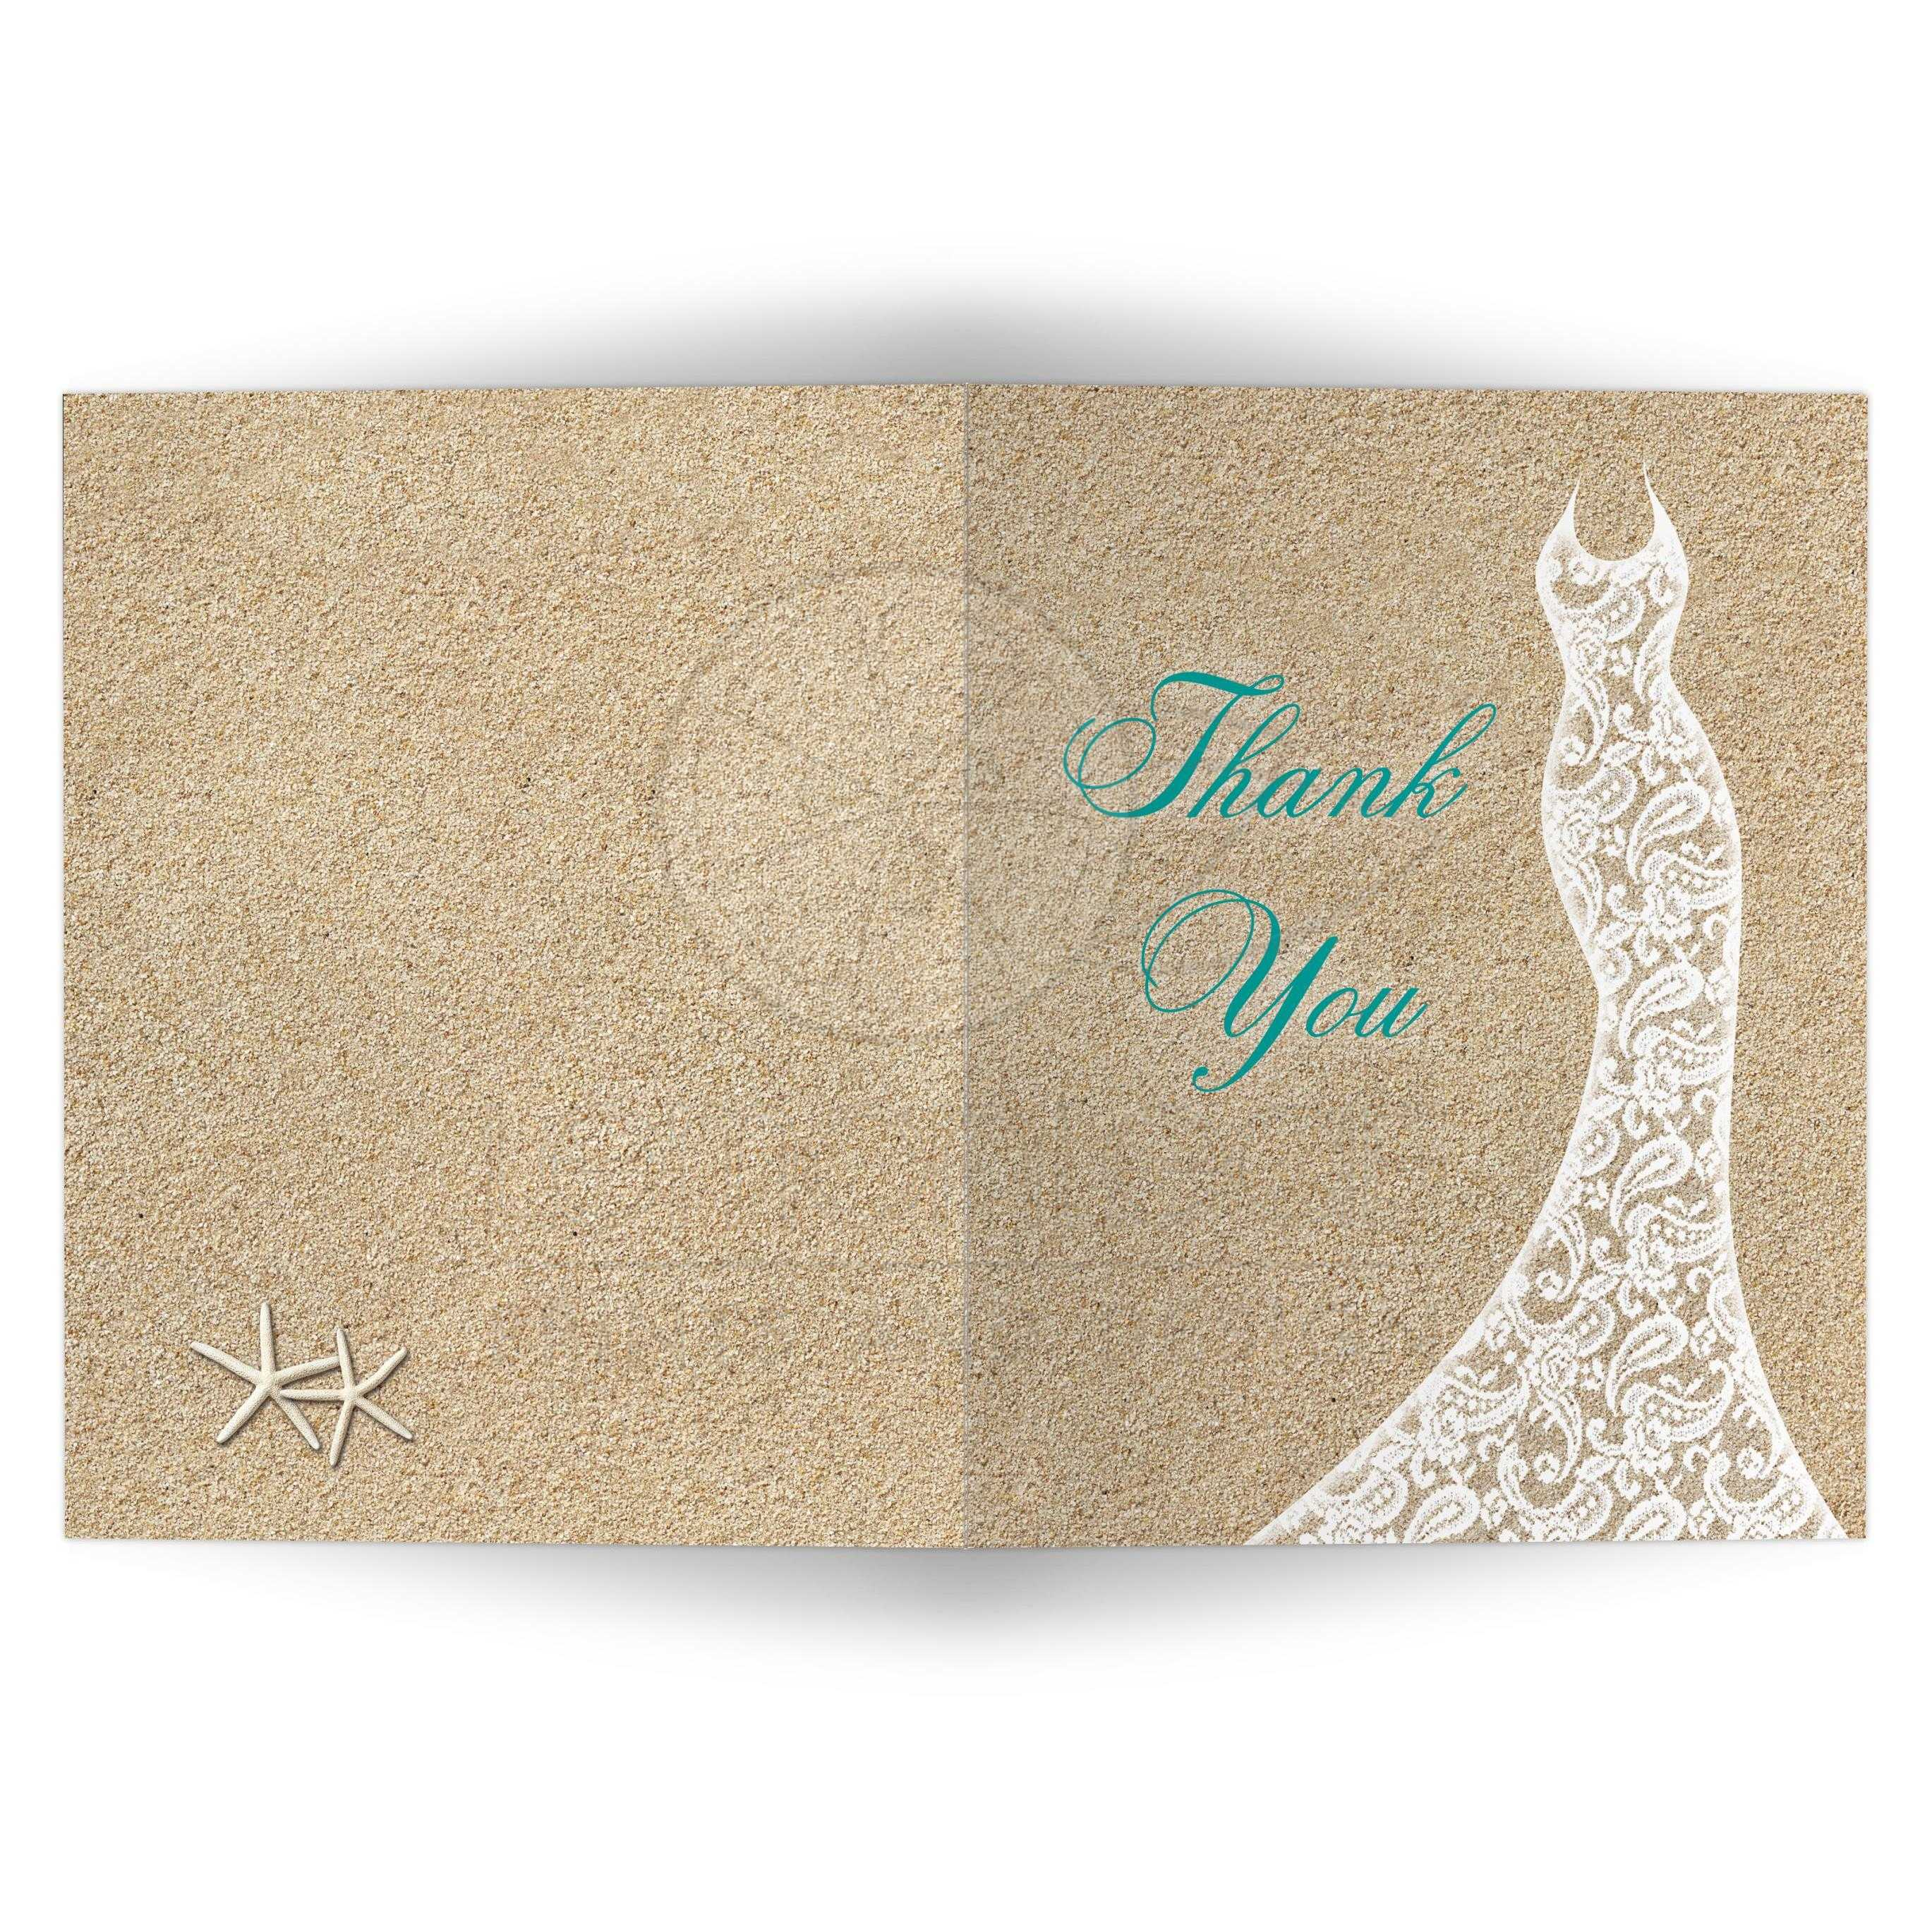 beautiful beach bridal shower thank you card with turquoise type